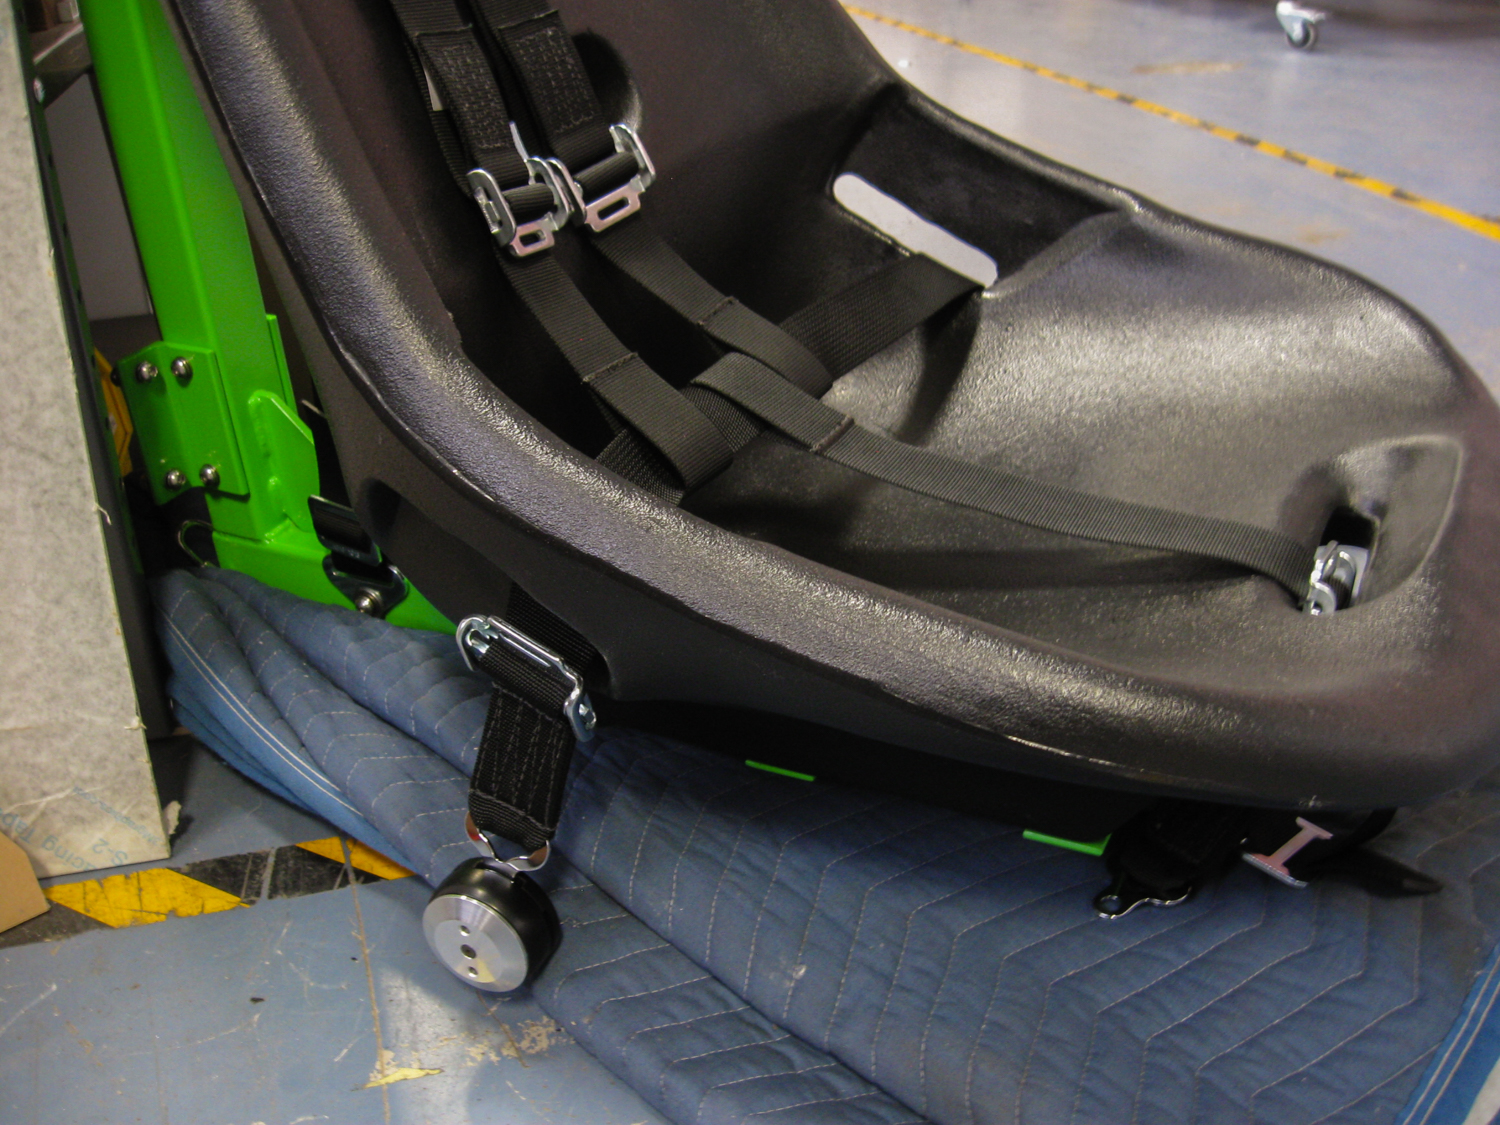 Testing an alternative strap configuration with the buckle under the seat